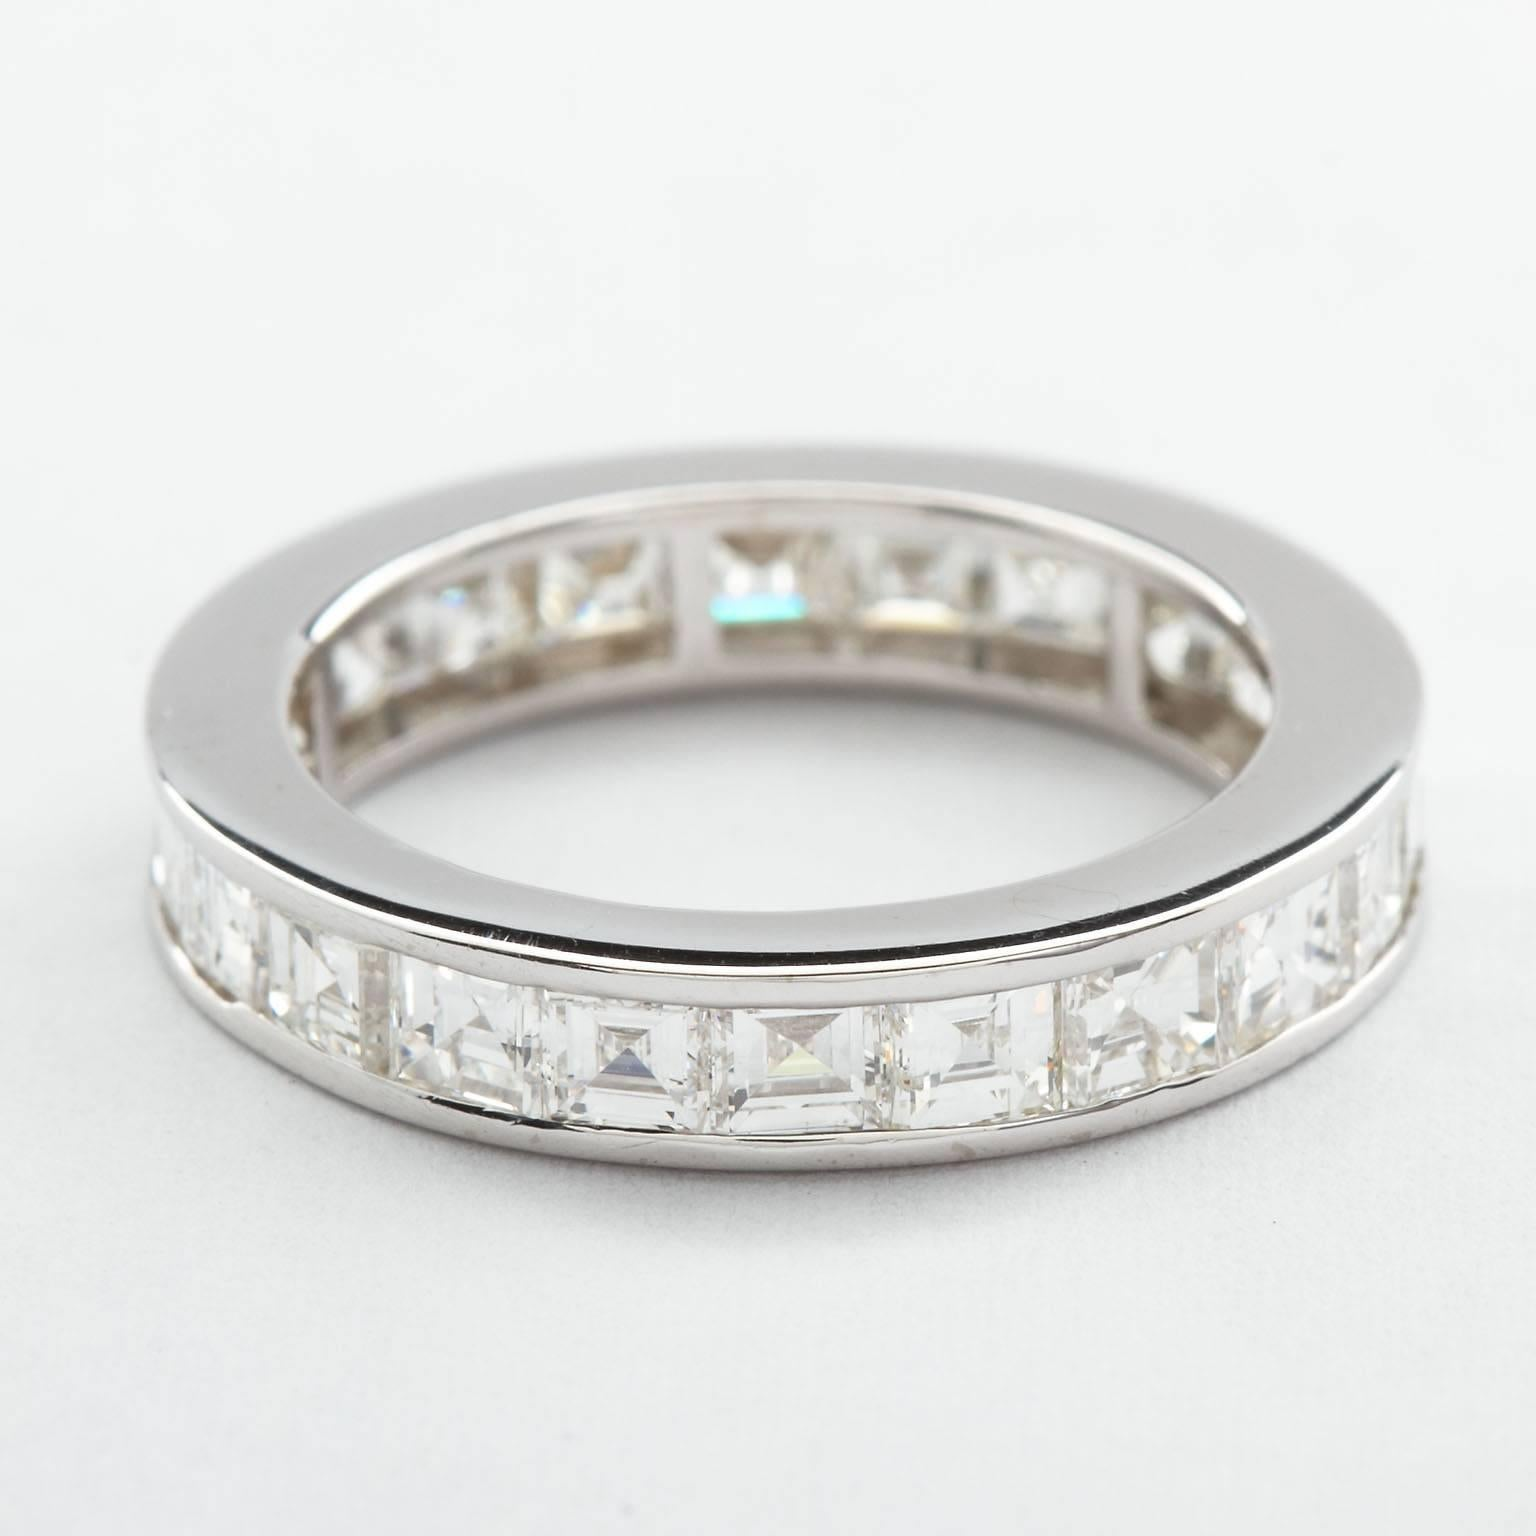 ring emerald single designers diamond band eternity product bands baguette french zoom sin stone cut in